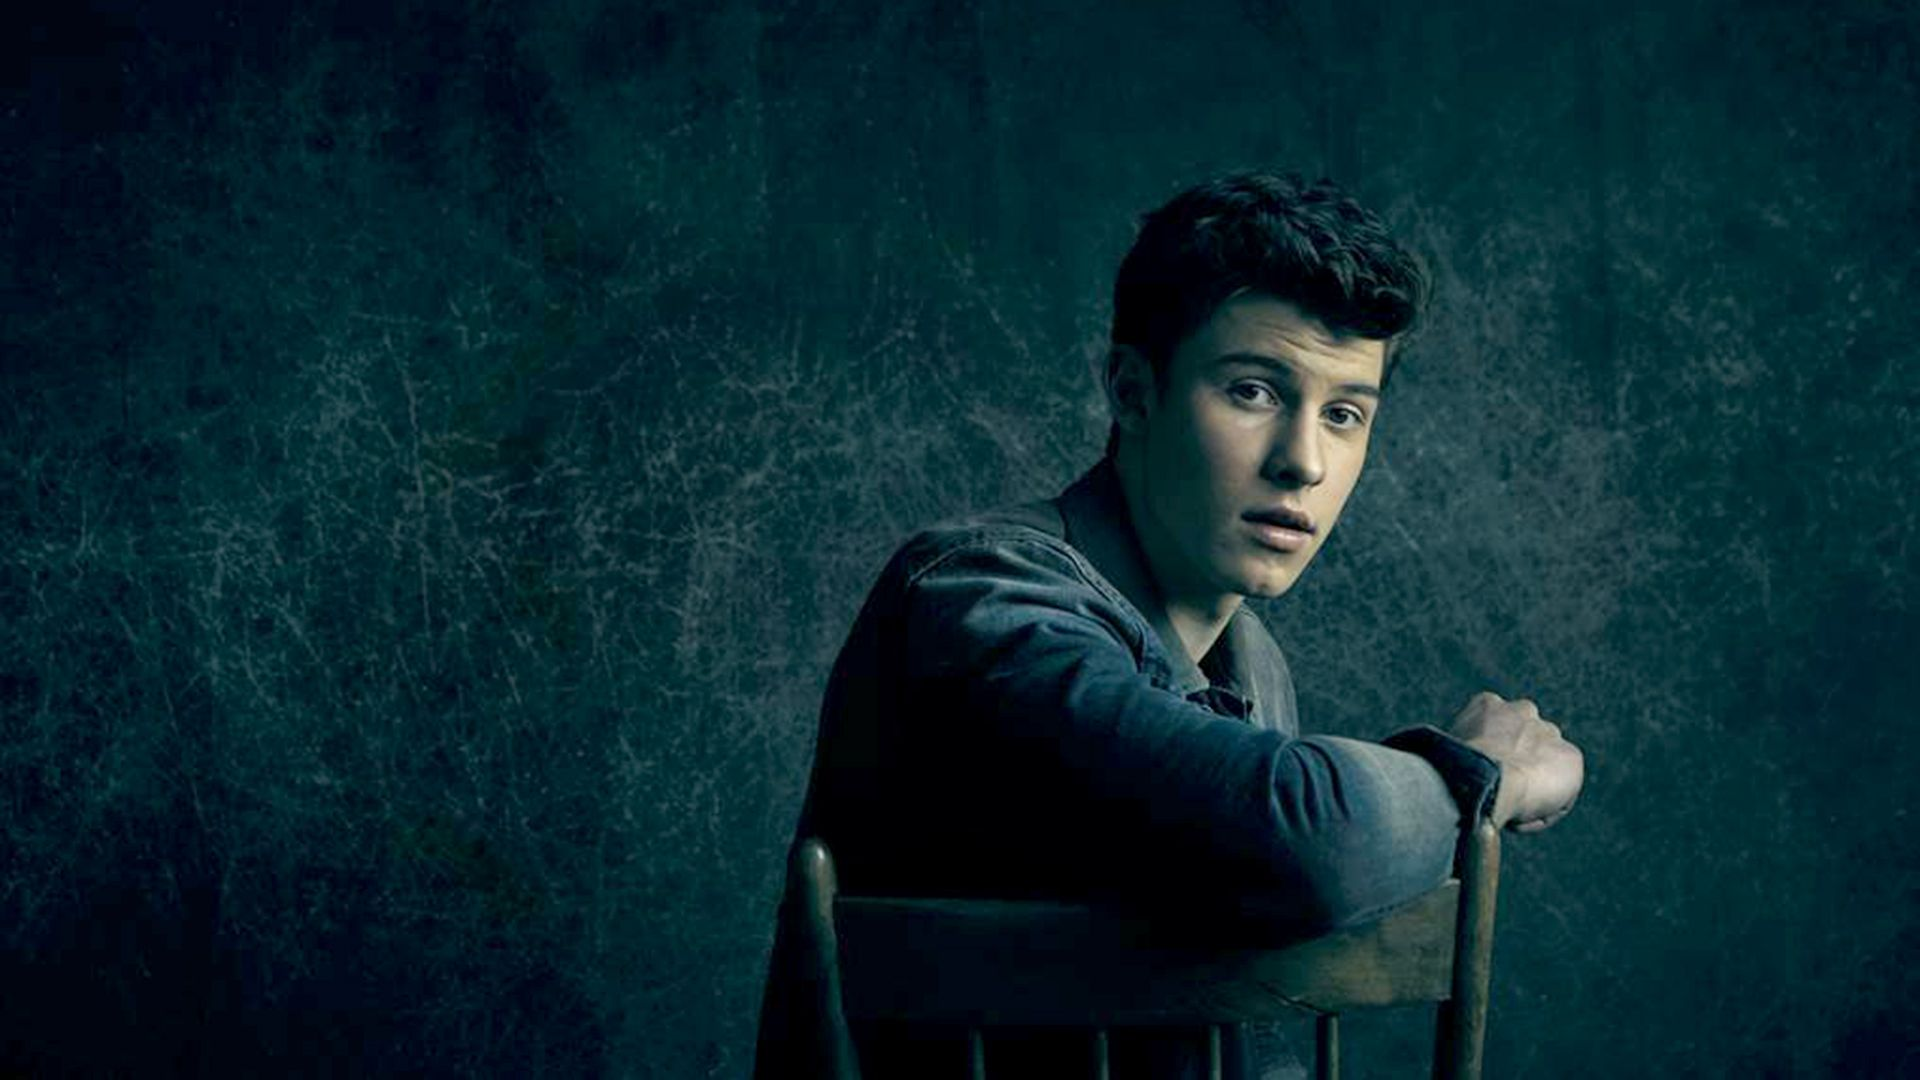 Shawn Mendes Wallpapers Wallpaper Cave Shawn Mendes Wallpaper Shawn Mendes Songs Shawn Mendes News